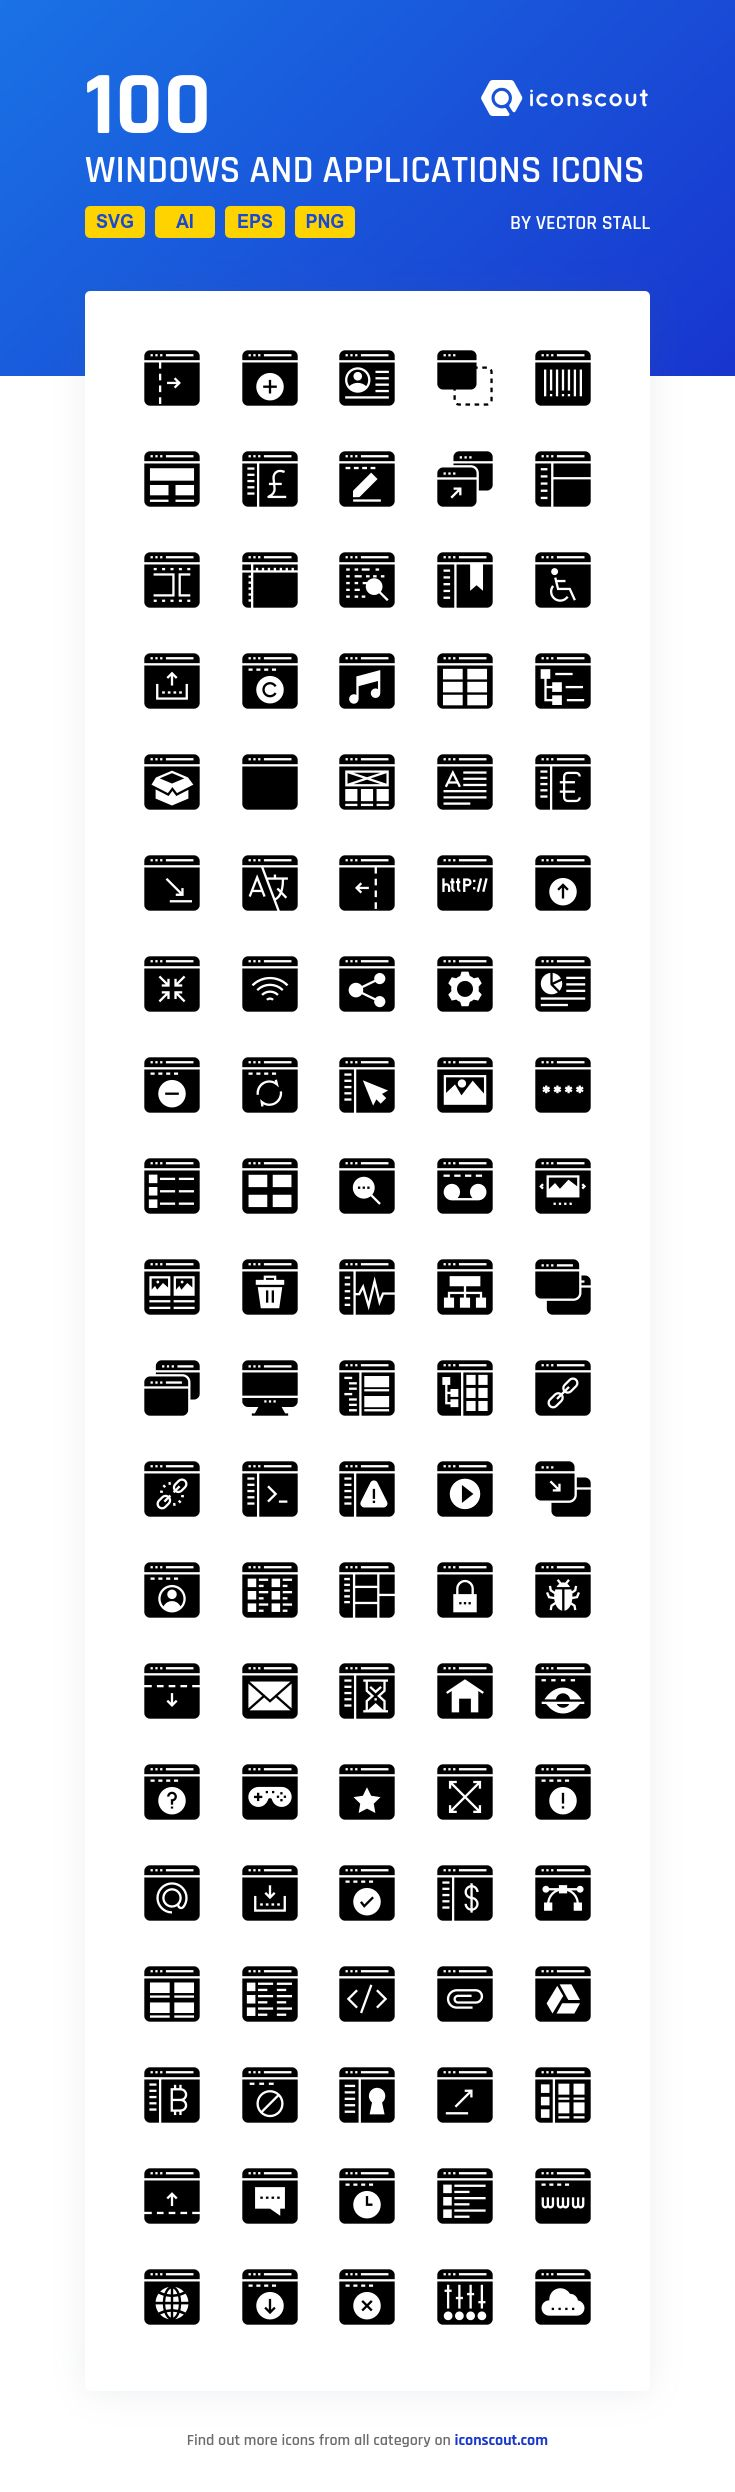 Windows And Applications  Icon Pack - 100 Solid Icons